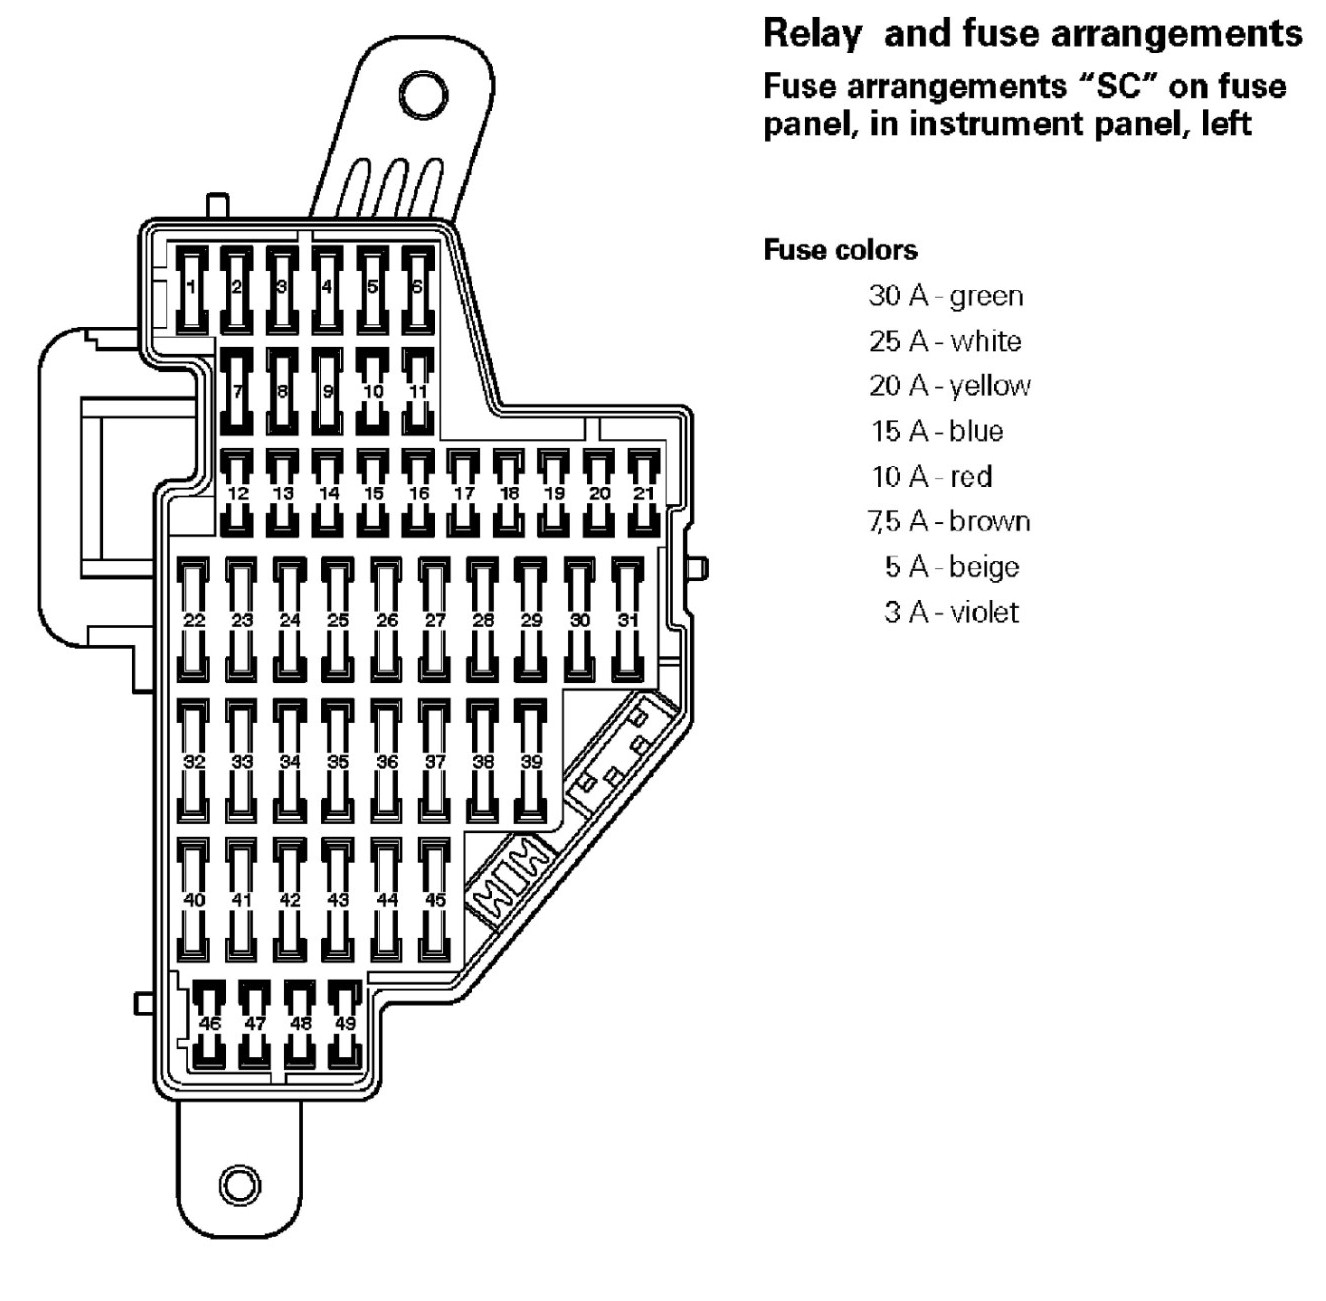 Fuse Box For 97 Jetta Wiring Library. Vw Jetta Fuse Box Diagram 2006 Trusted Schematics. Morgan. Morgan Olson Wiring Diagrams 2006 At Scoala.co